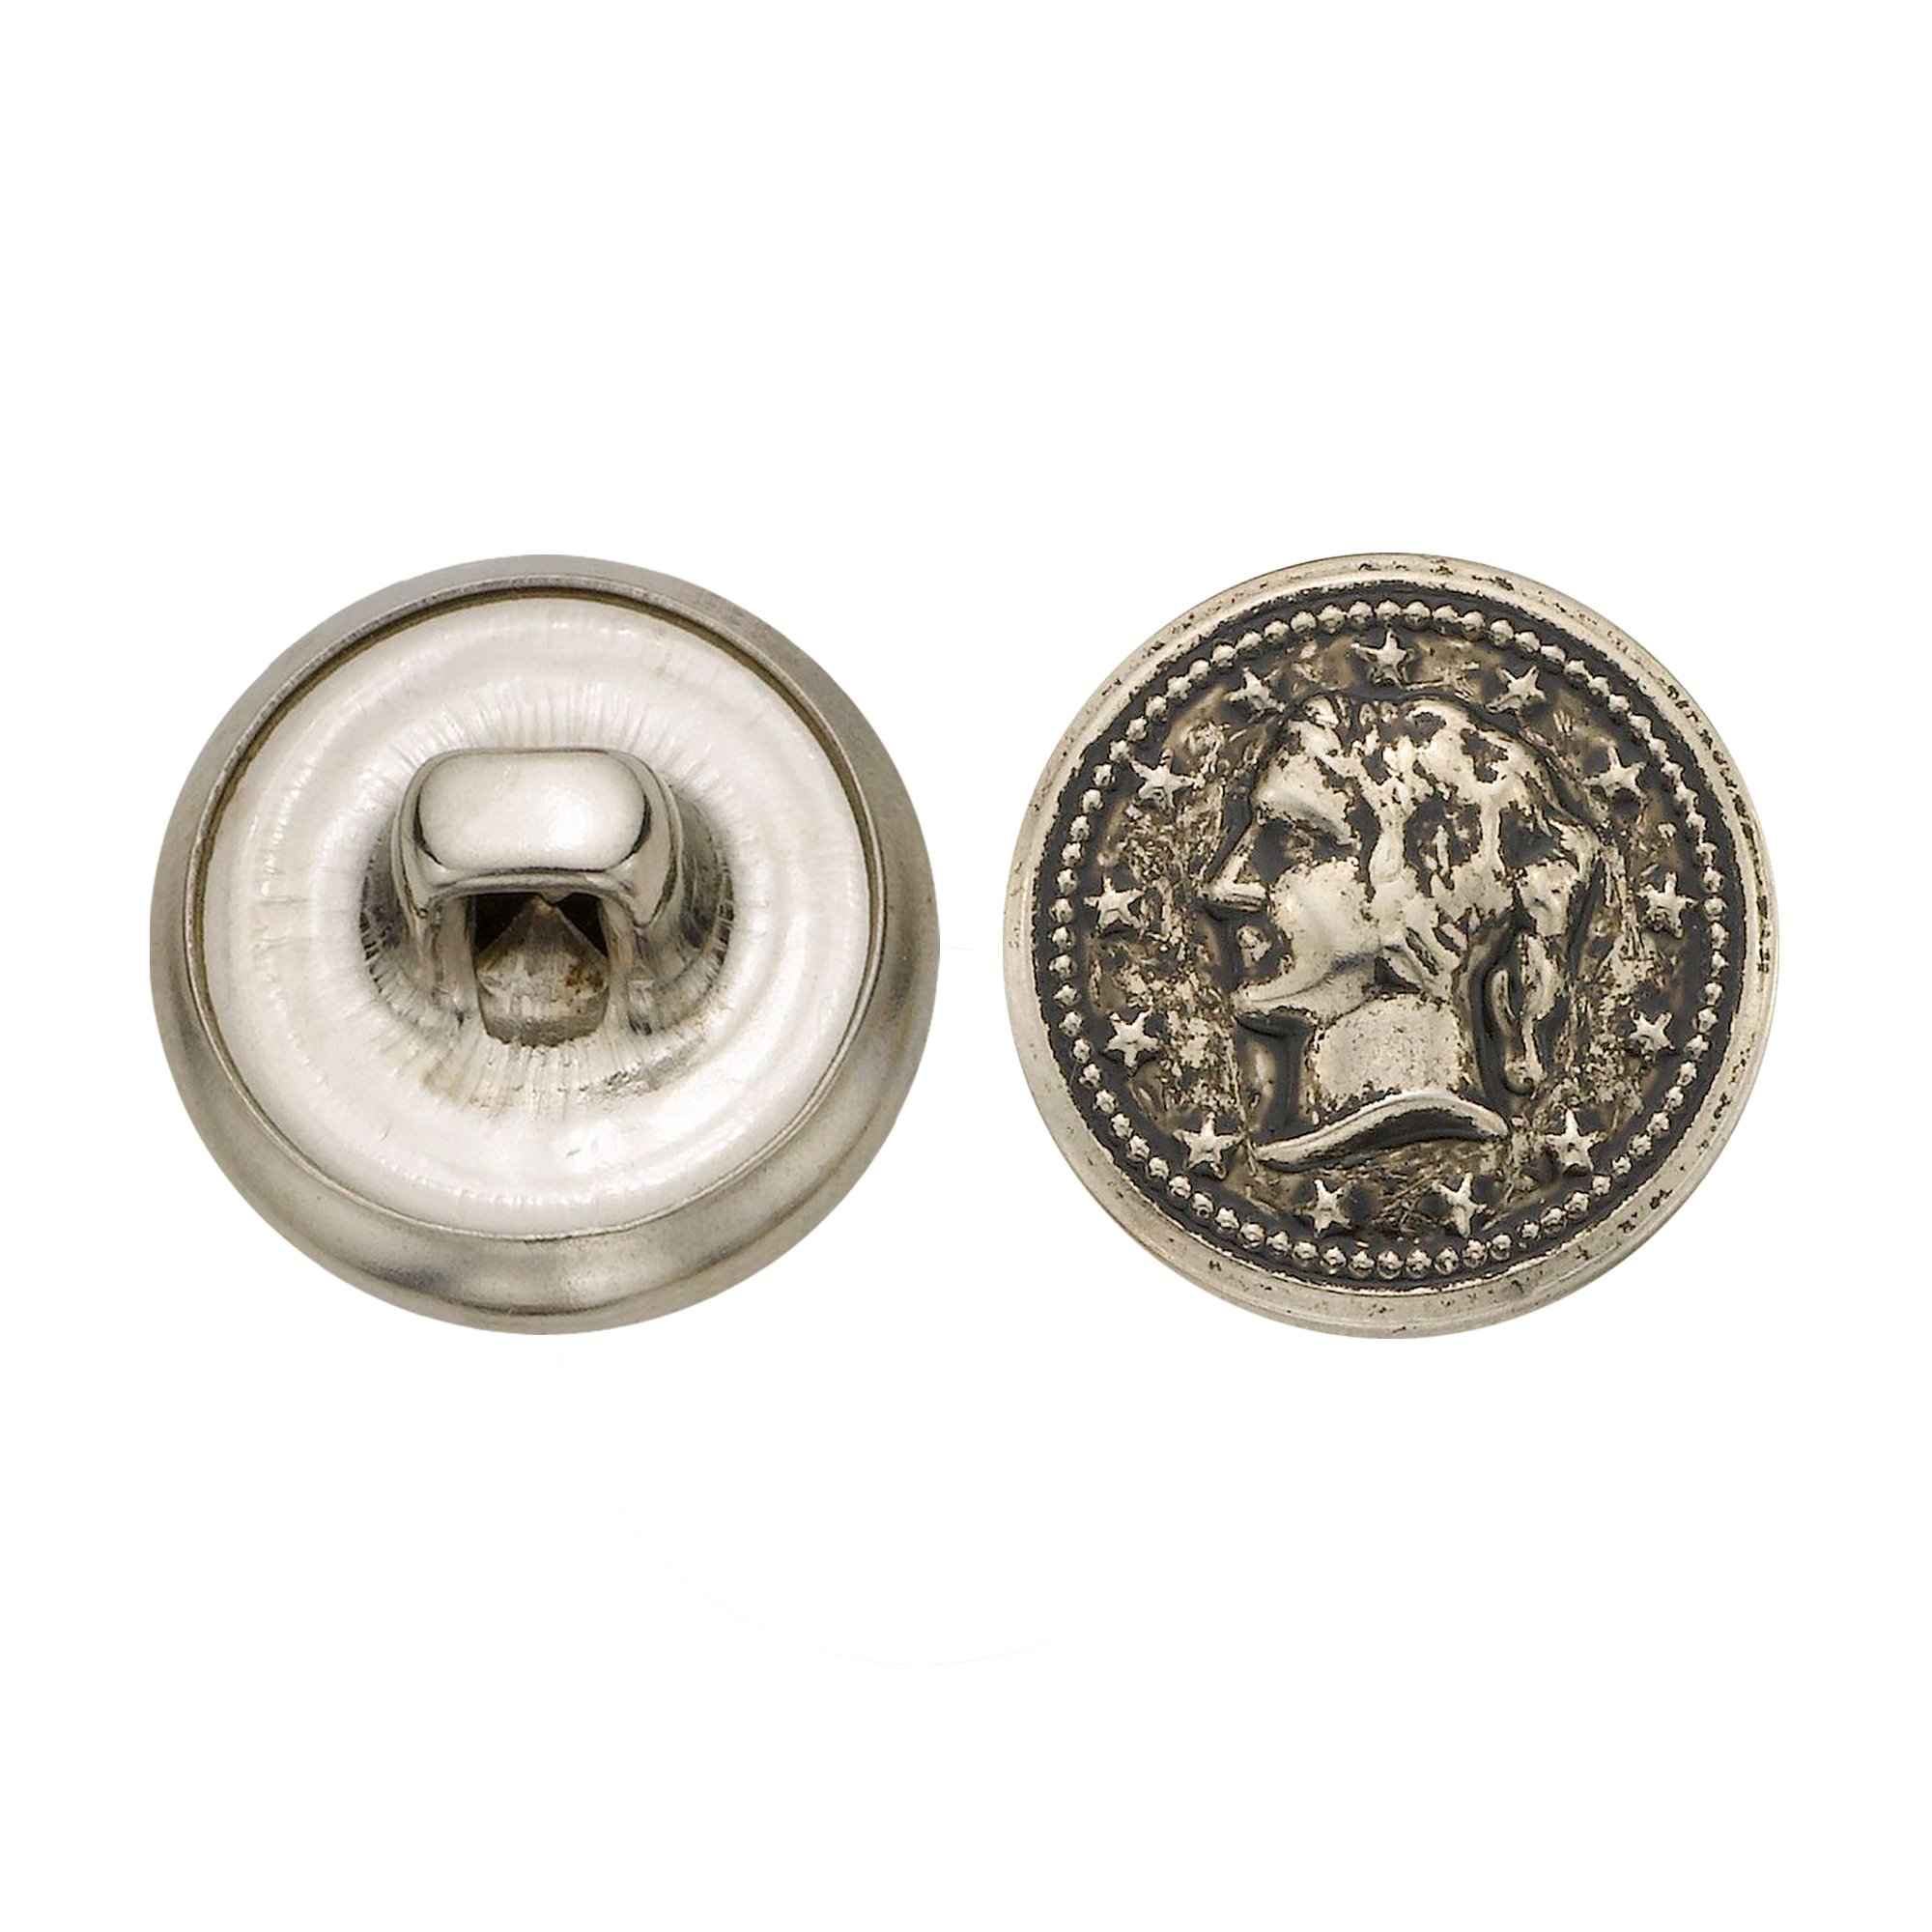 C&C Metal Products 5328 Lady Head Coin Metal Button, Size 24 Ligne, Antique Nickel, 72-Pack